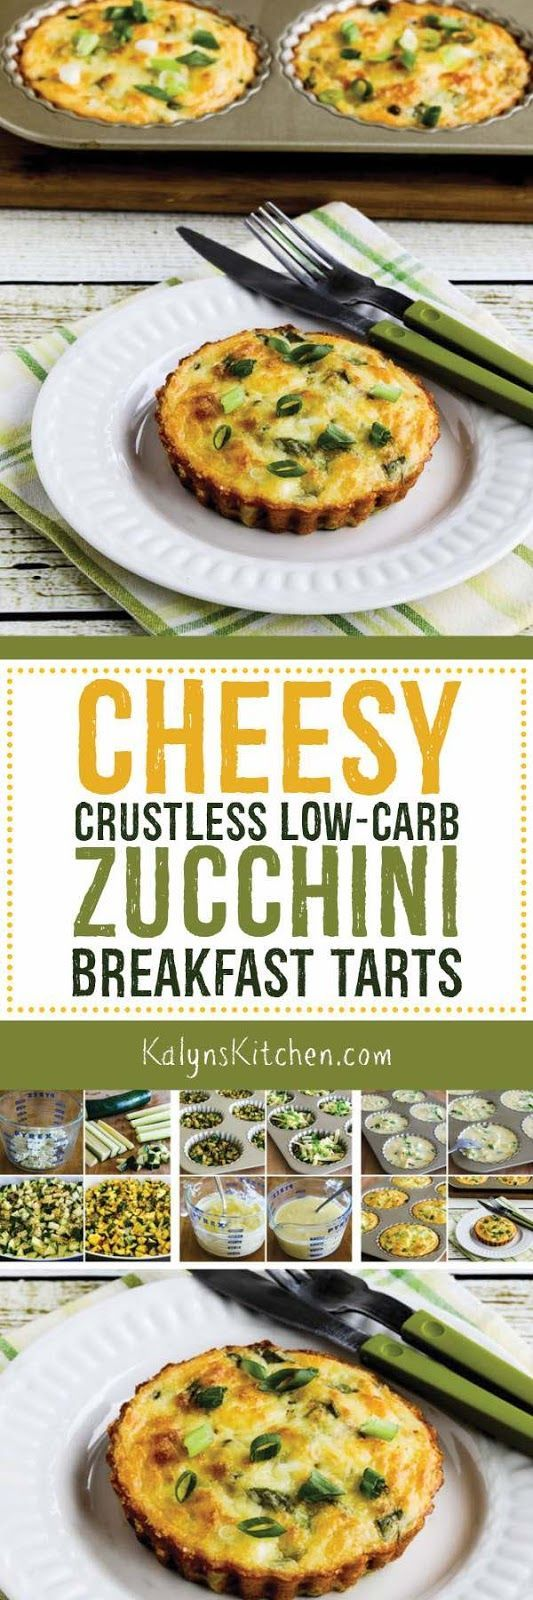 If you're getting buried in zucchini, these Cheesy Crustless Low-Carb Zucchini Breakfast Tarts are a delicious way to use it! And these tasty breakfast tarts are also Keto, low-glycemic, gluten-free, and meatless, and with the right ingredient choices they can be South Beach Diet friendly. [found on KalynsKitchen.com]